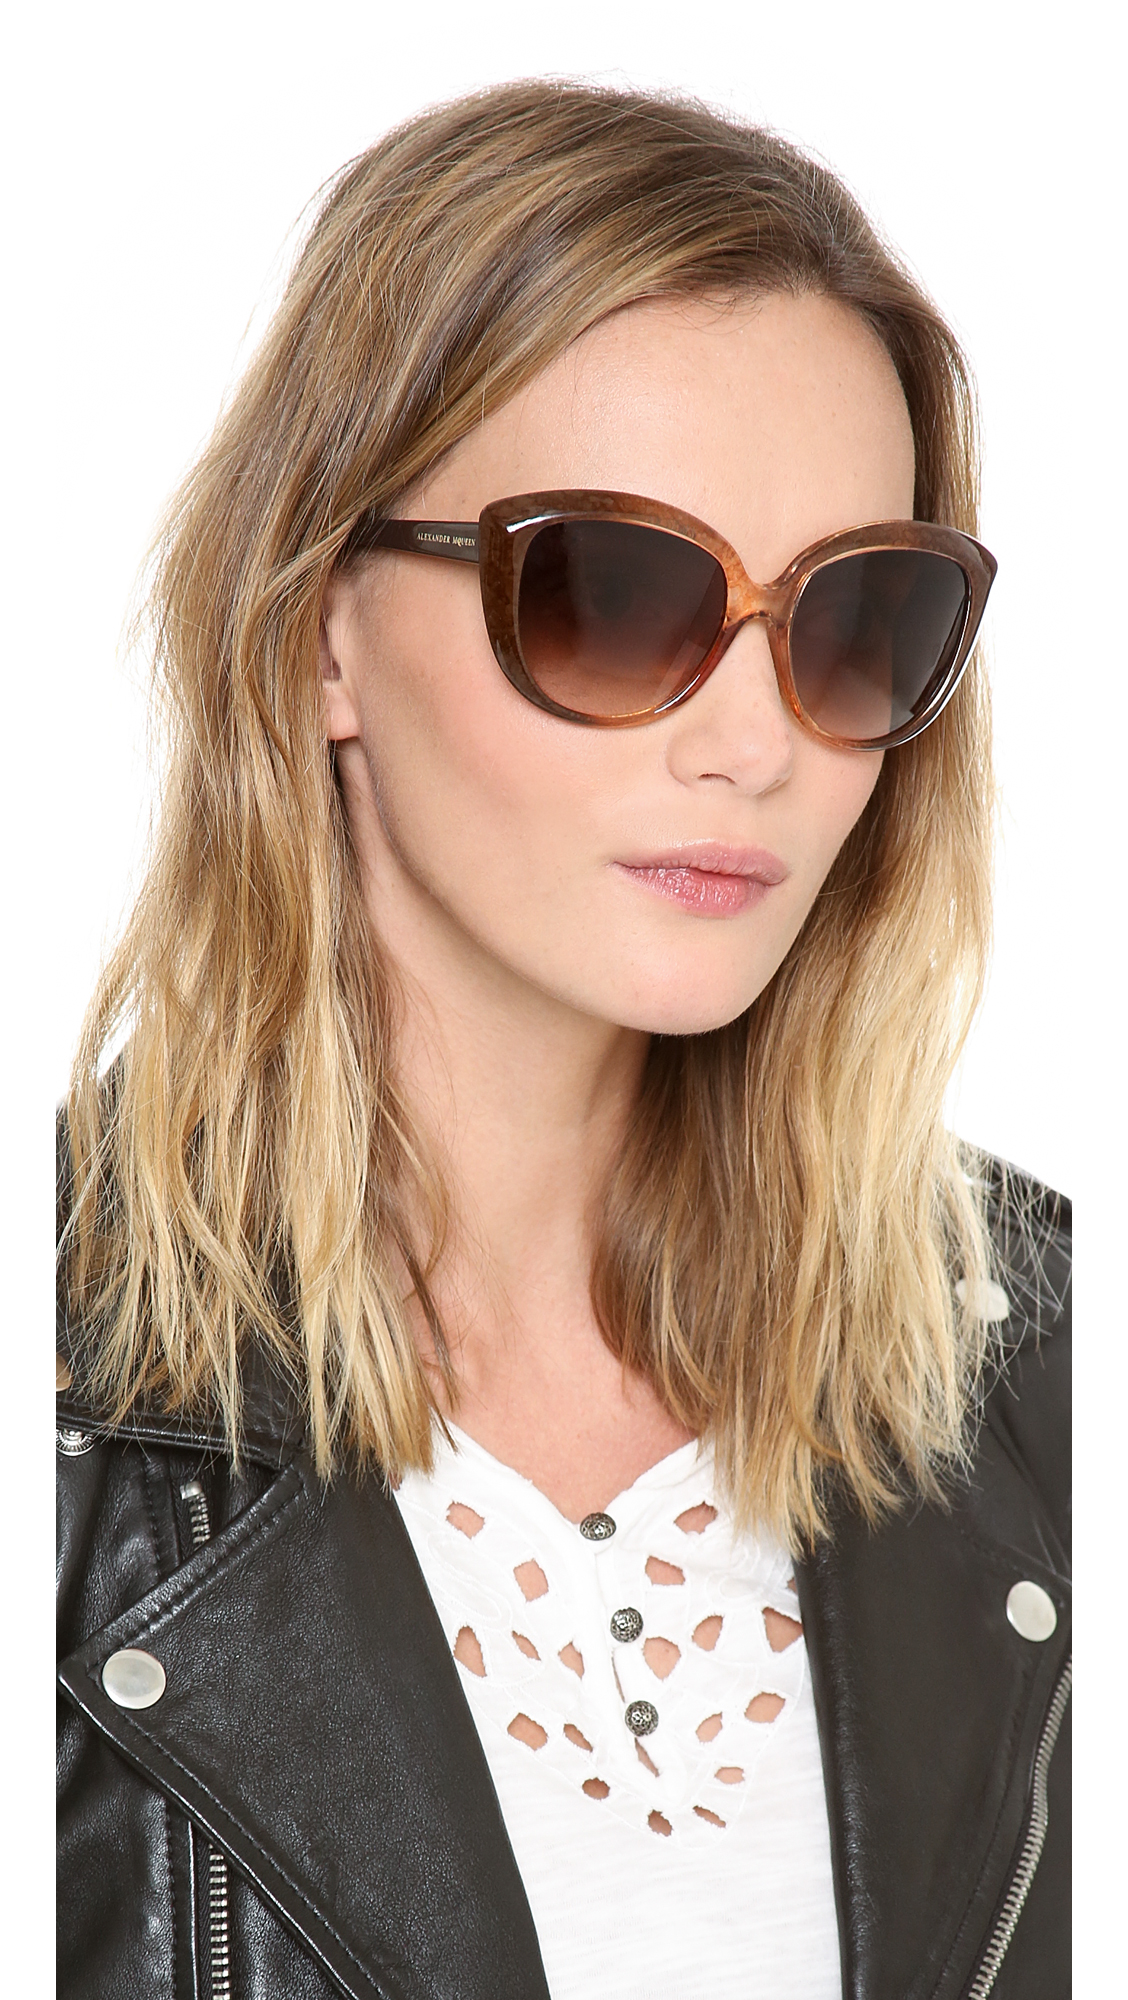 Alexander Mcqueen Cateye Sunglasses  alexander mcqueen cat eye sunglasses in brown lyst